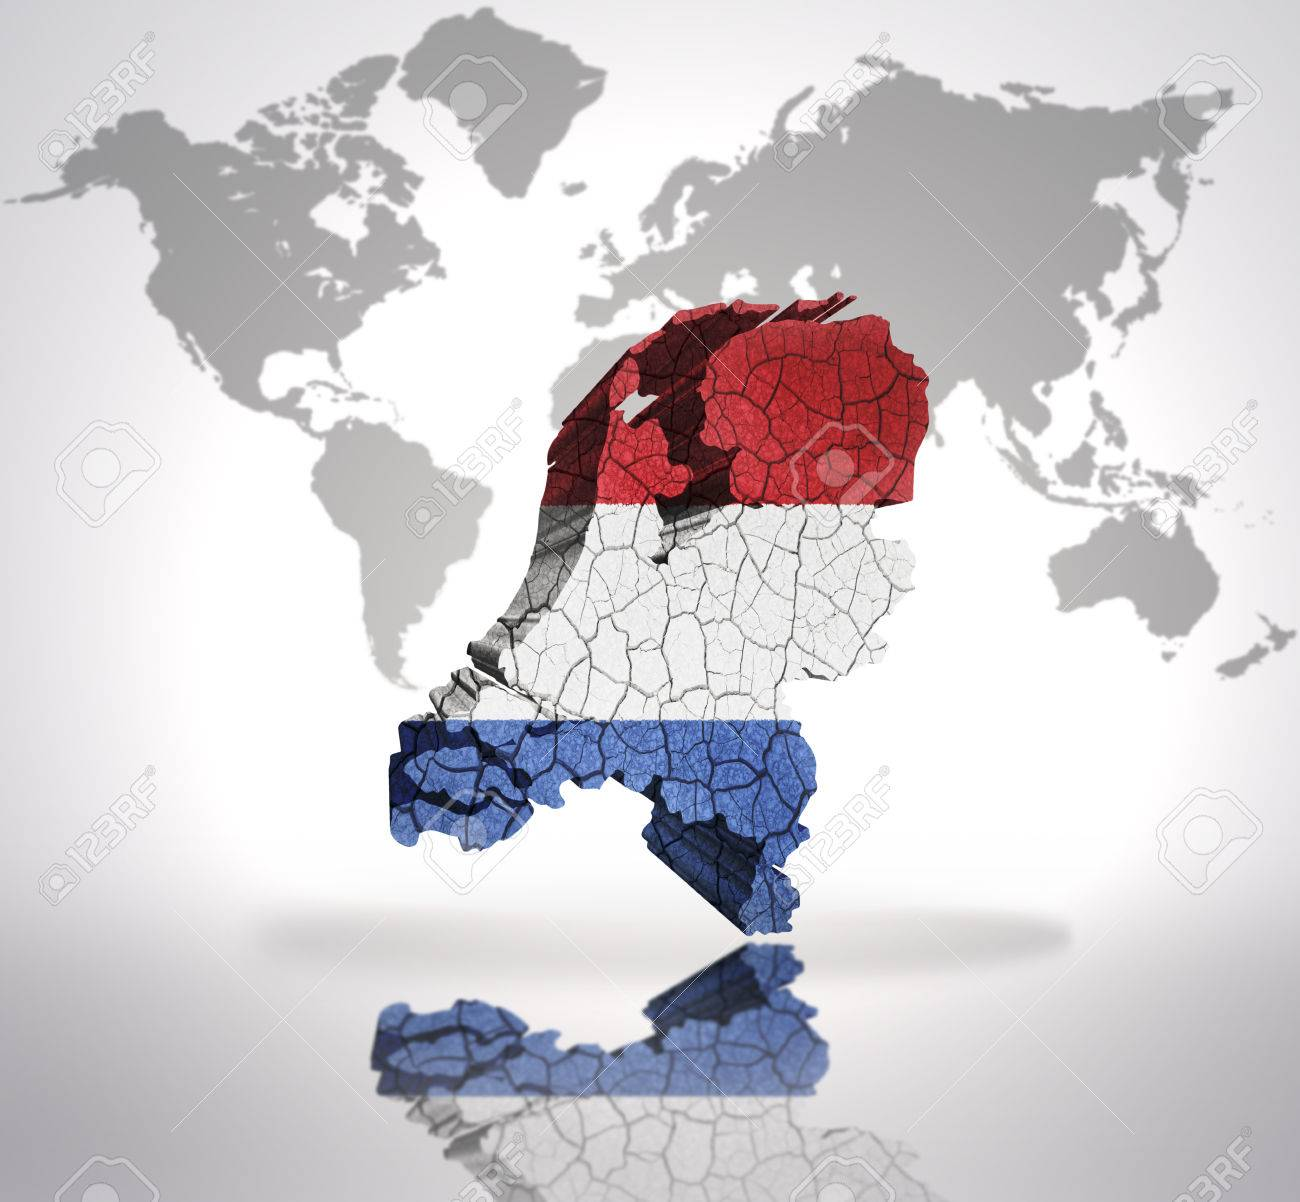 Map of netherlands with dutch flag on a world map background stock map of netherlands with dutch flag on a world map background stock photo 32715086 gumiabroncs Image collections